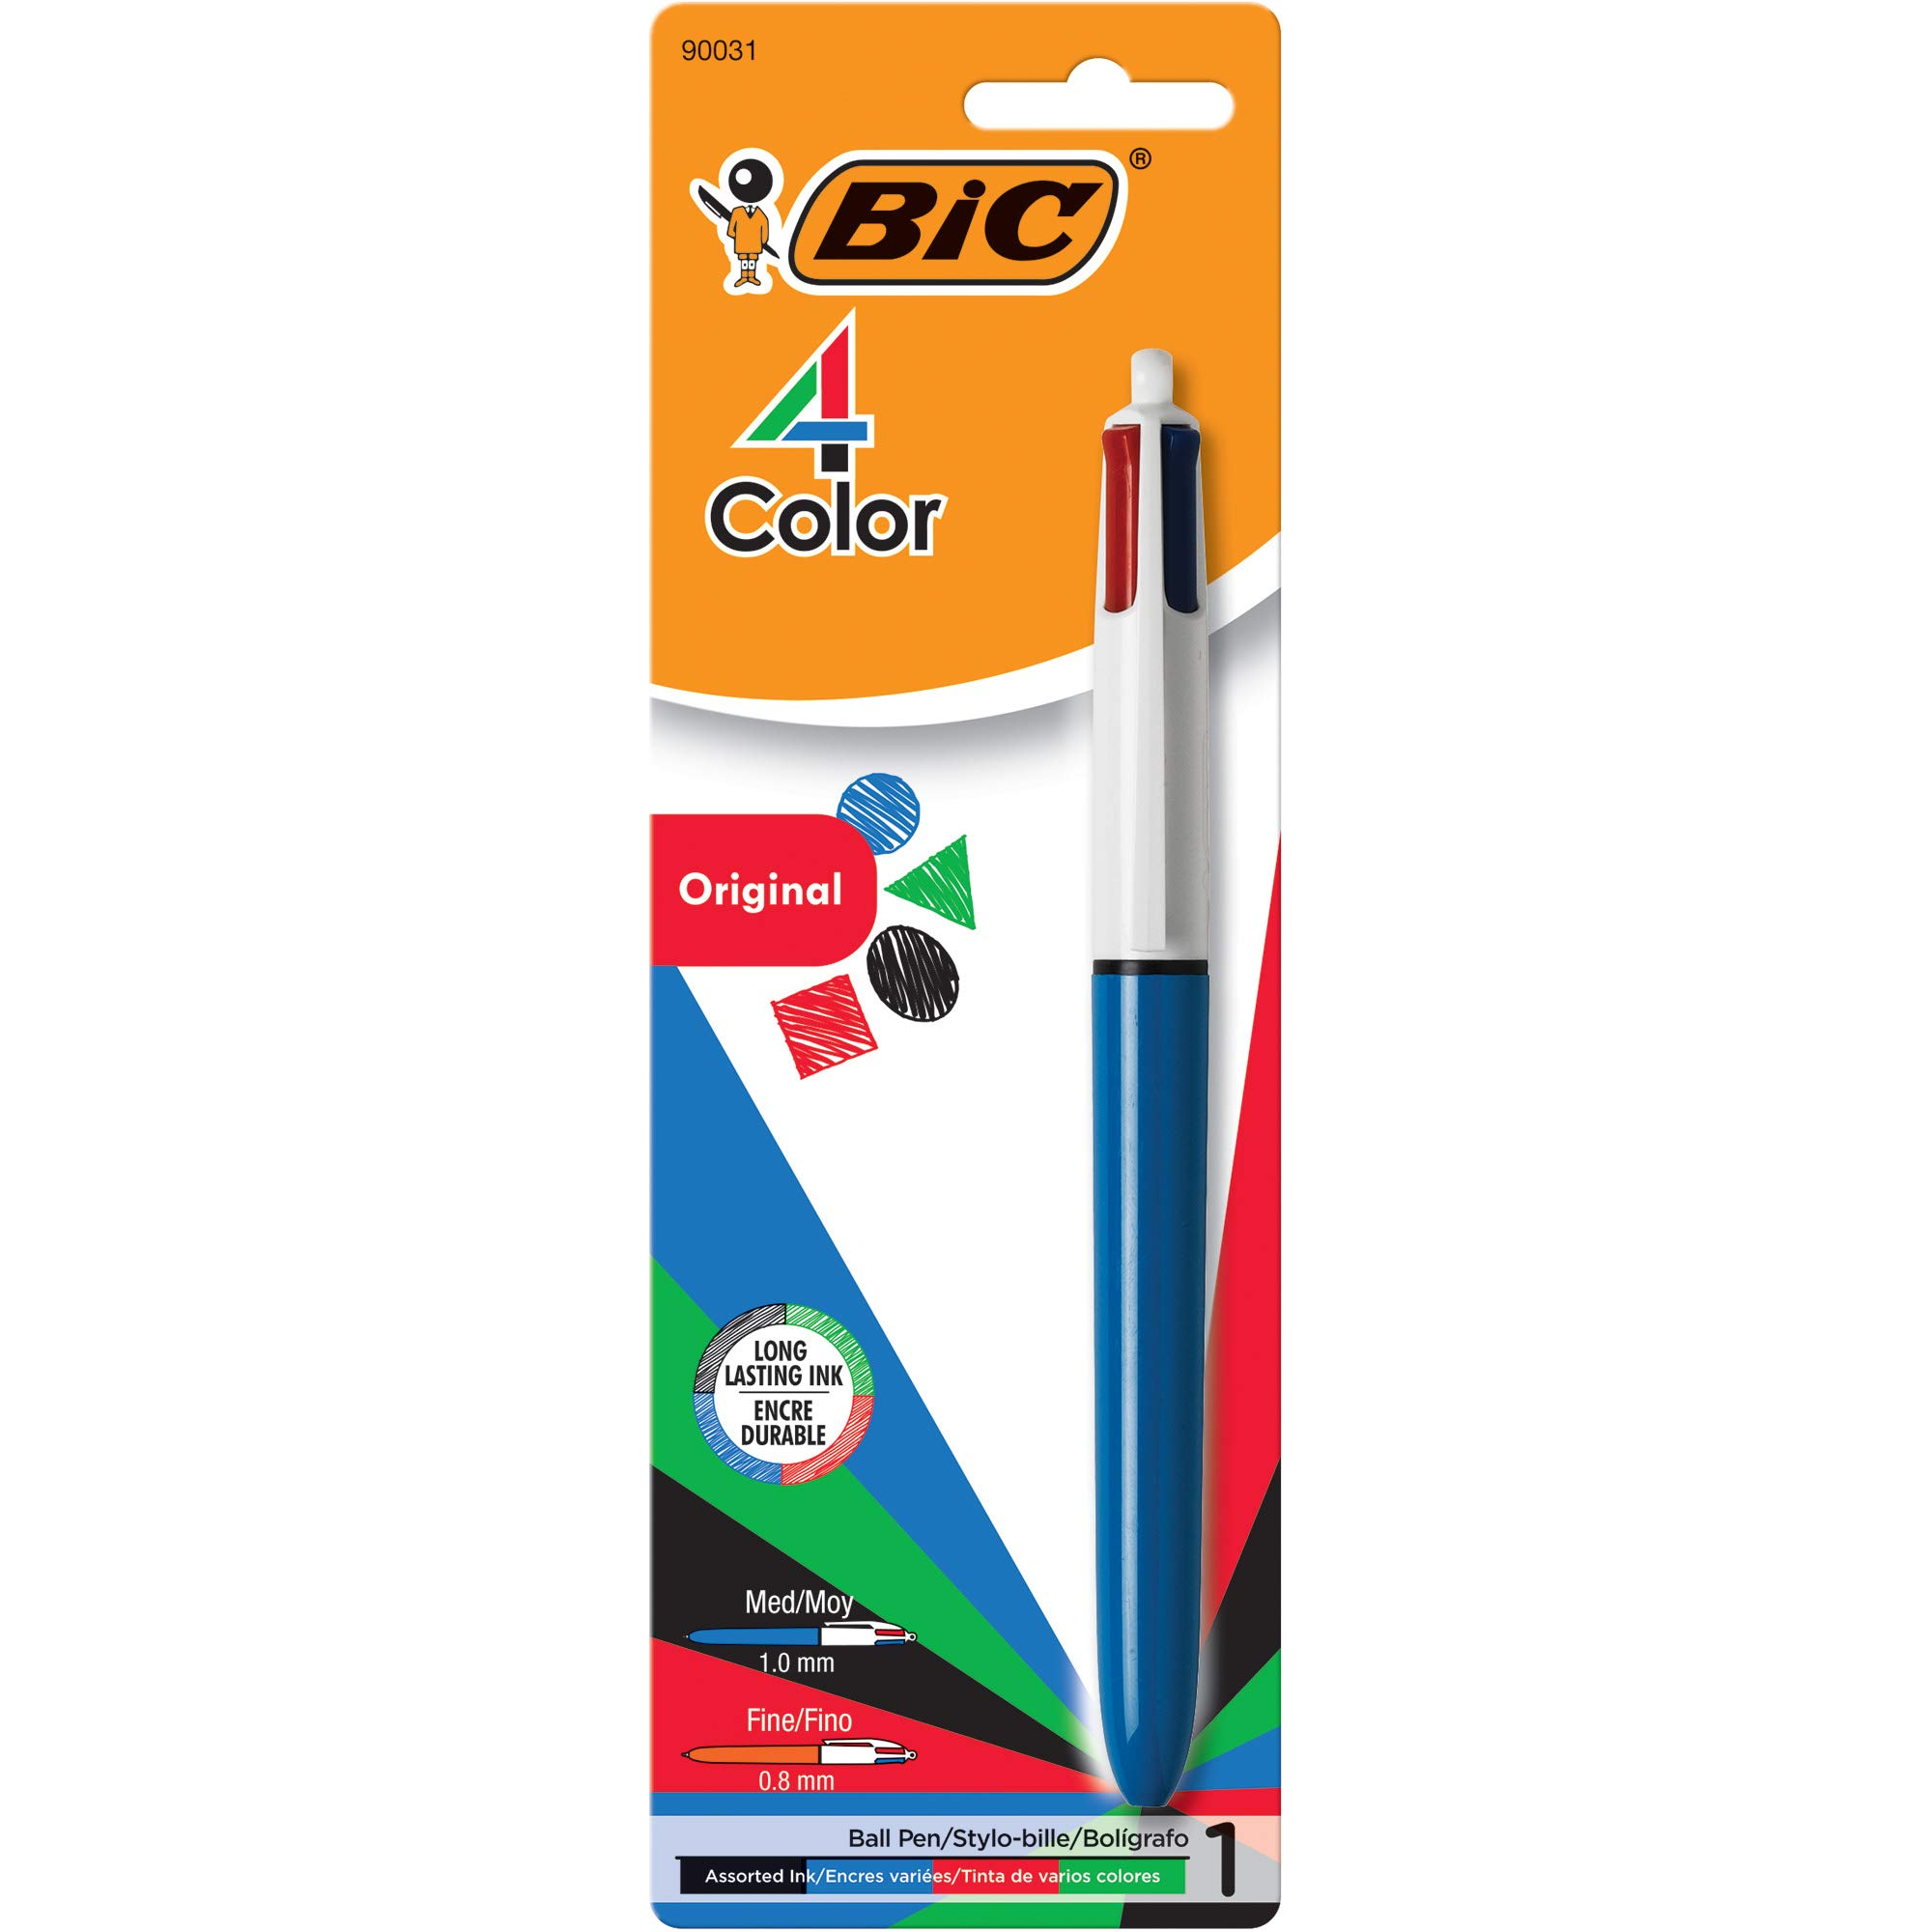 Bic Medium Point Ball Pen, 4 Colors, Assorted Ink